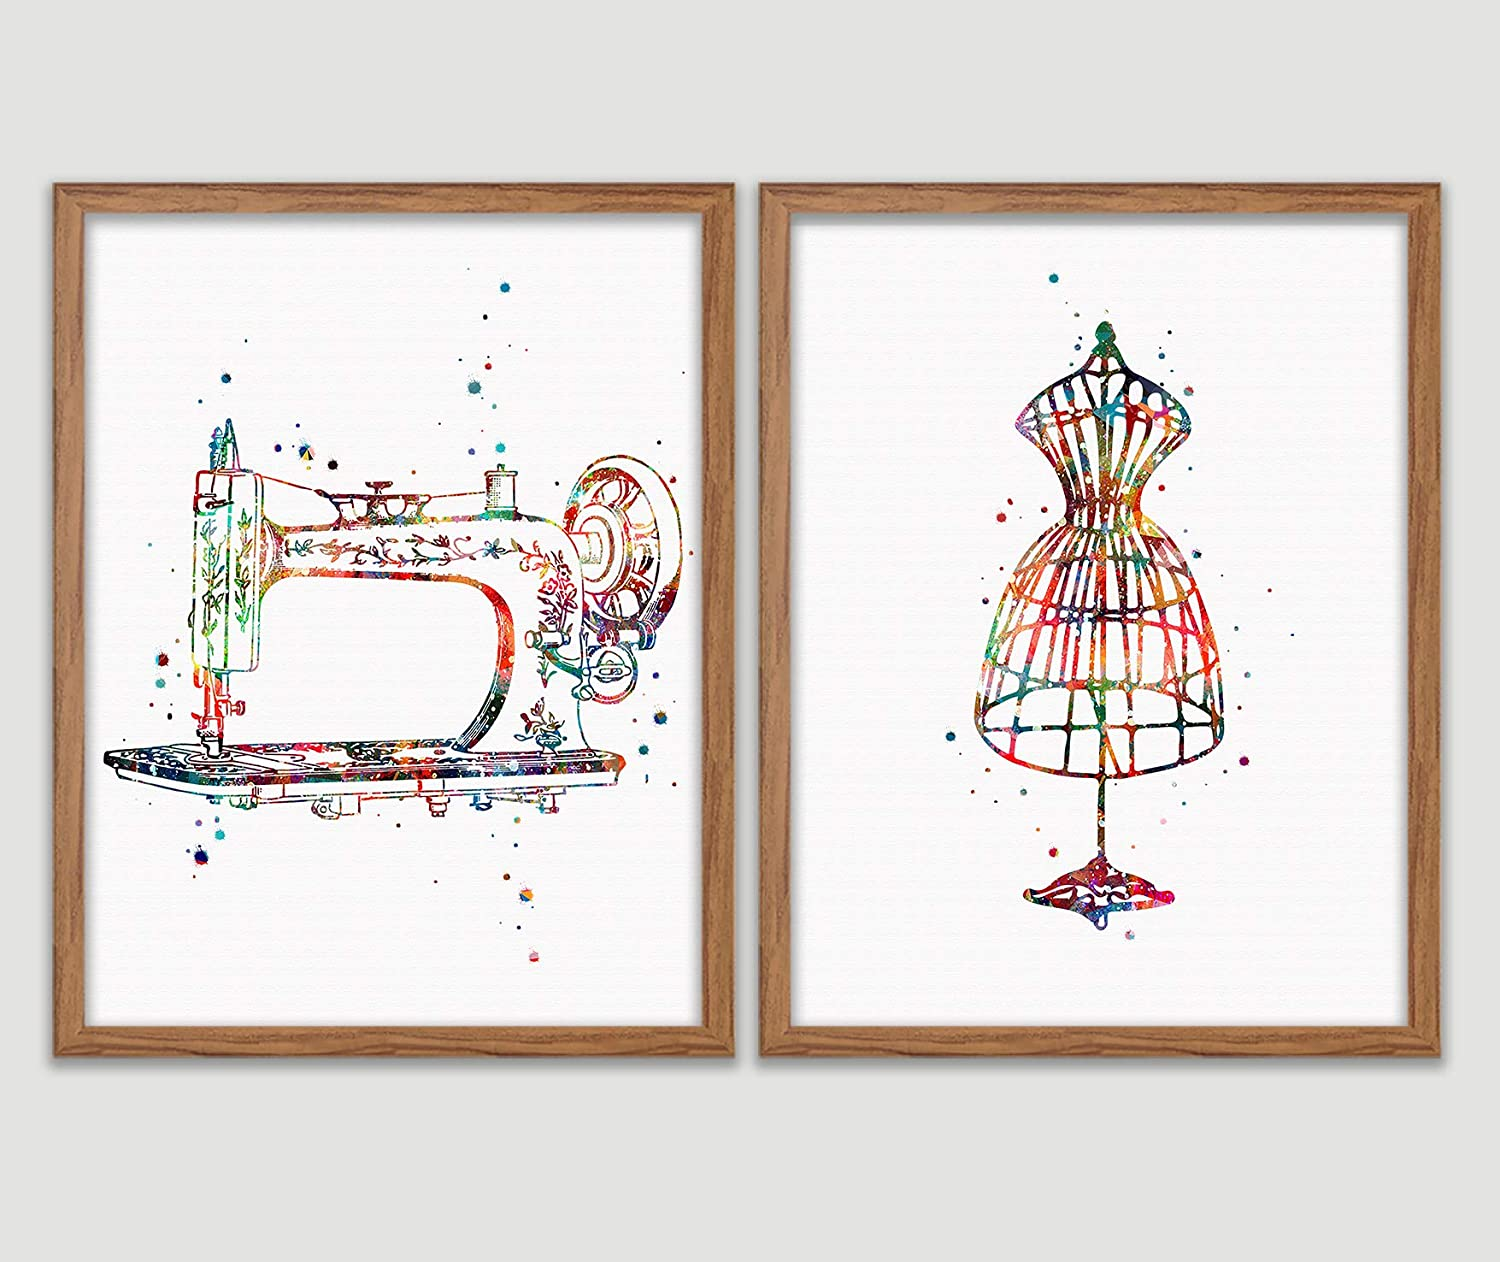 Sewing Watercolor Poster Sewing Room Art Print Craft Room Decor Sewing Machine Dressform Mannequin Seamstress Wall Decor Sewing Room Artworks Tailors Wall Art Home Decor Wall Hanging Gift For Sewer